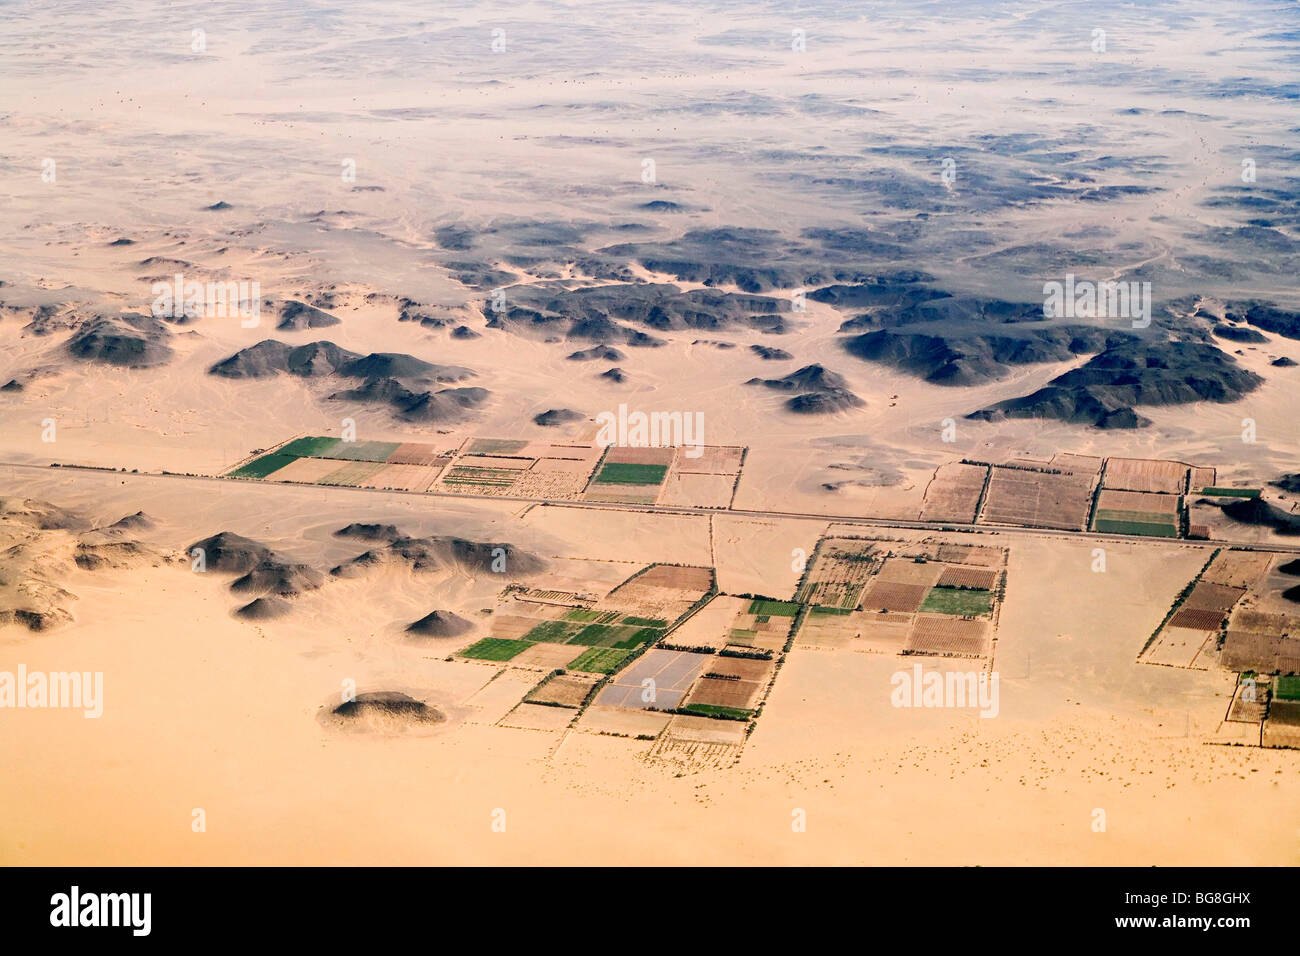 Lybia: aerial view - Stock Image